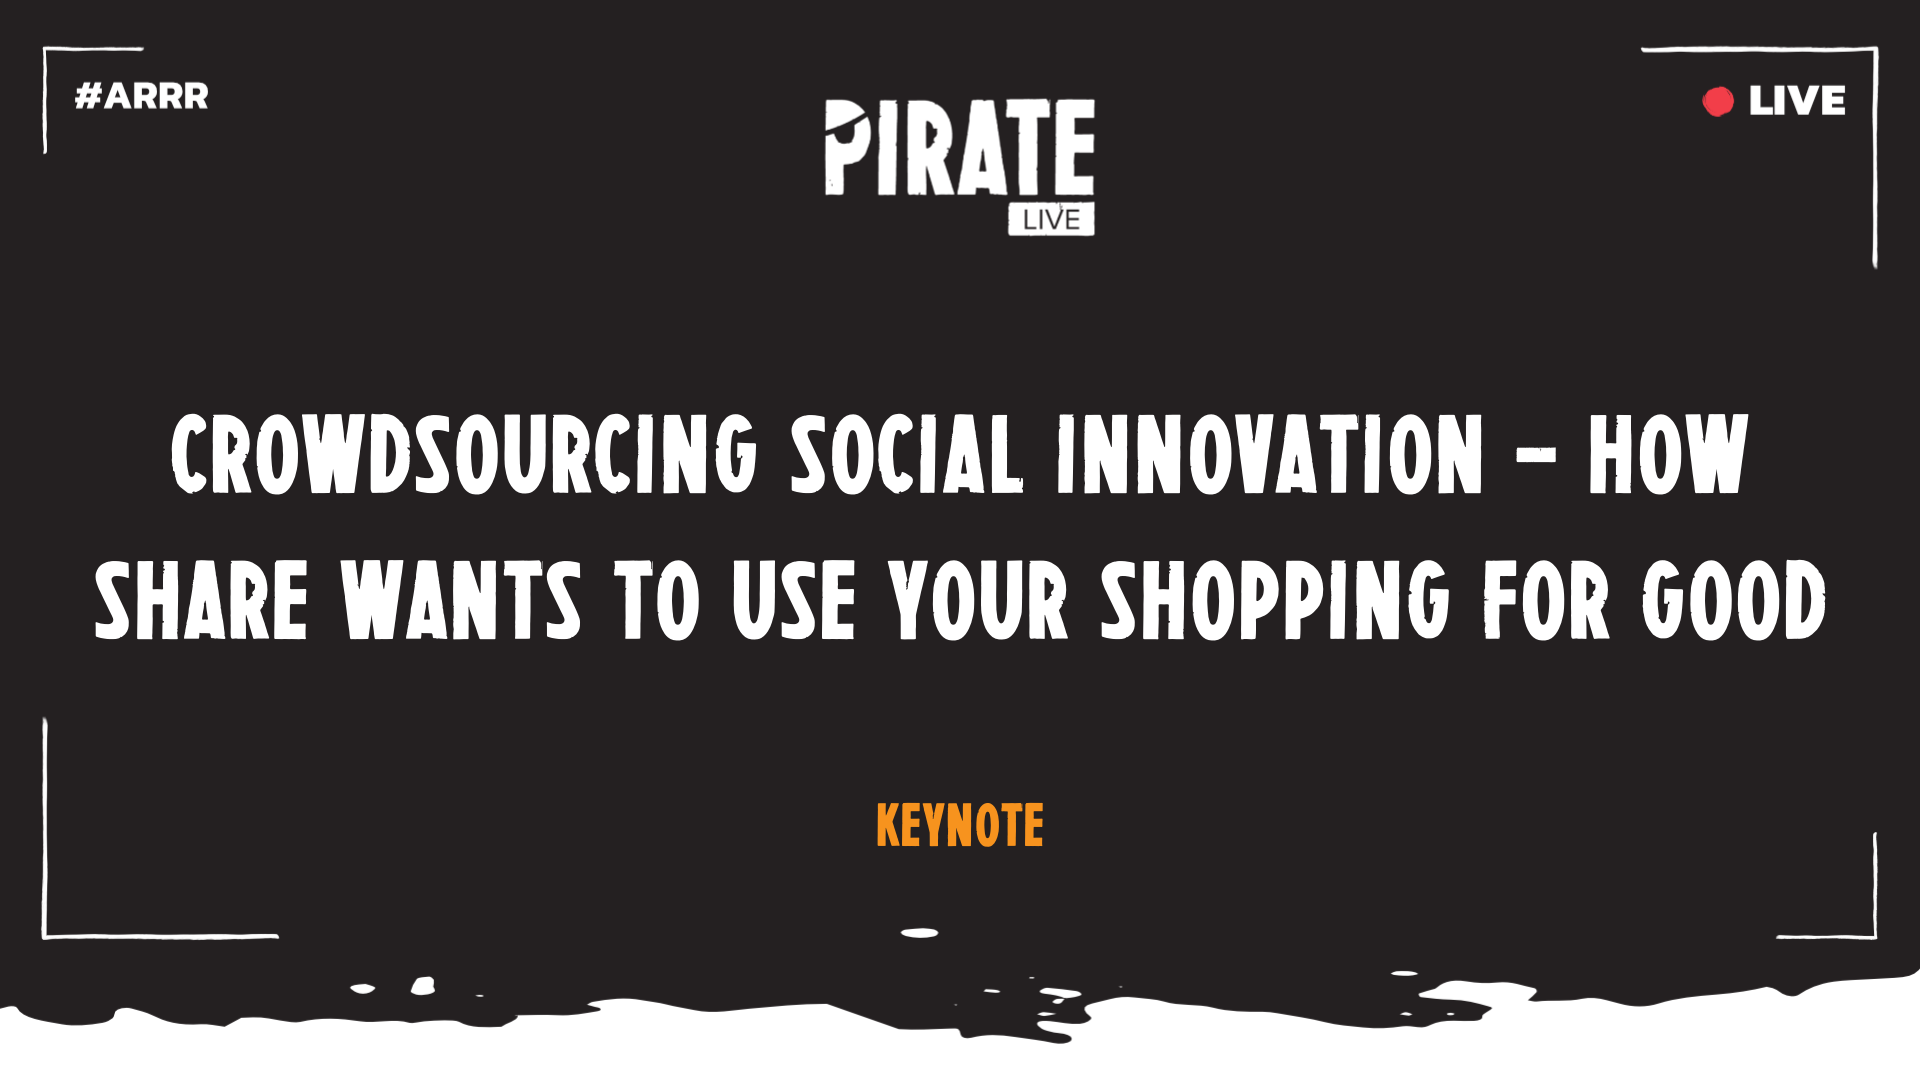 Crowdsourcing social innovation - how share wants to use your shopping for good